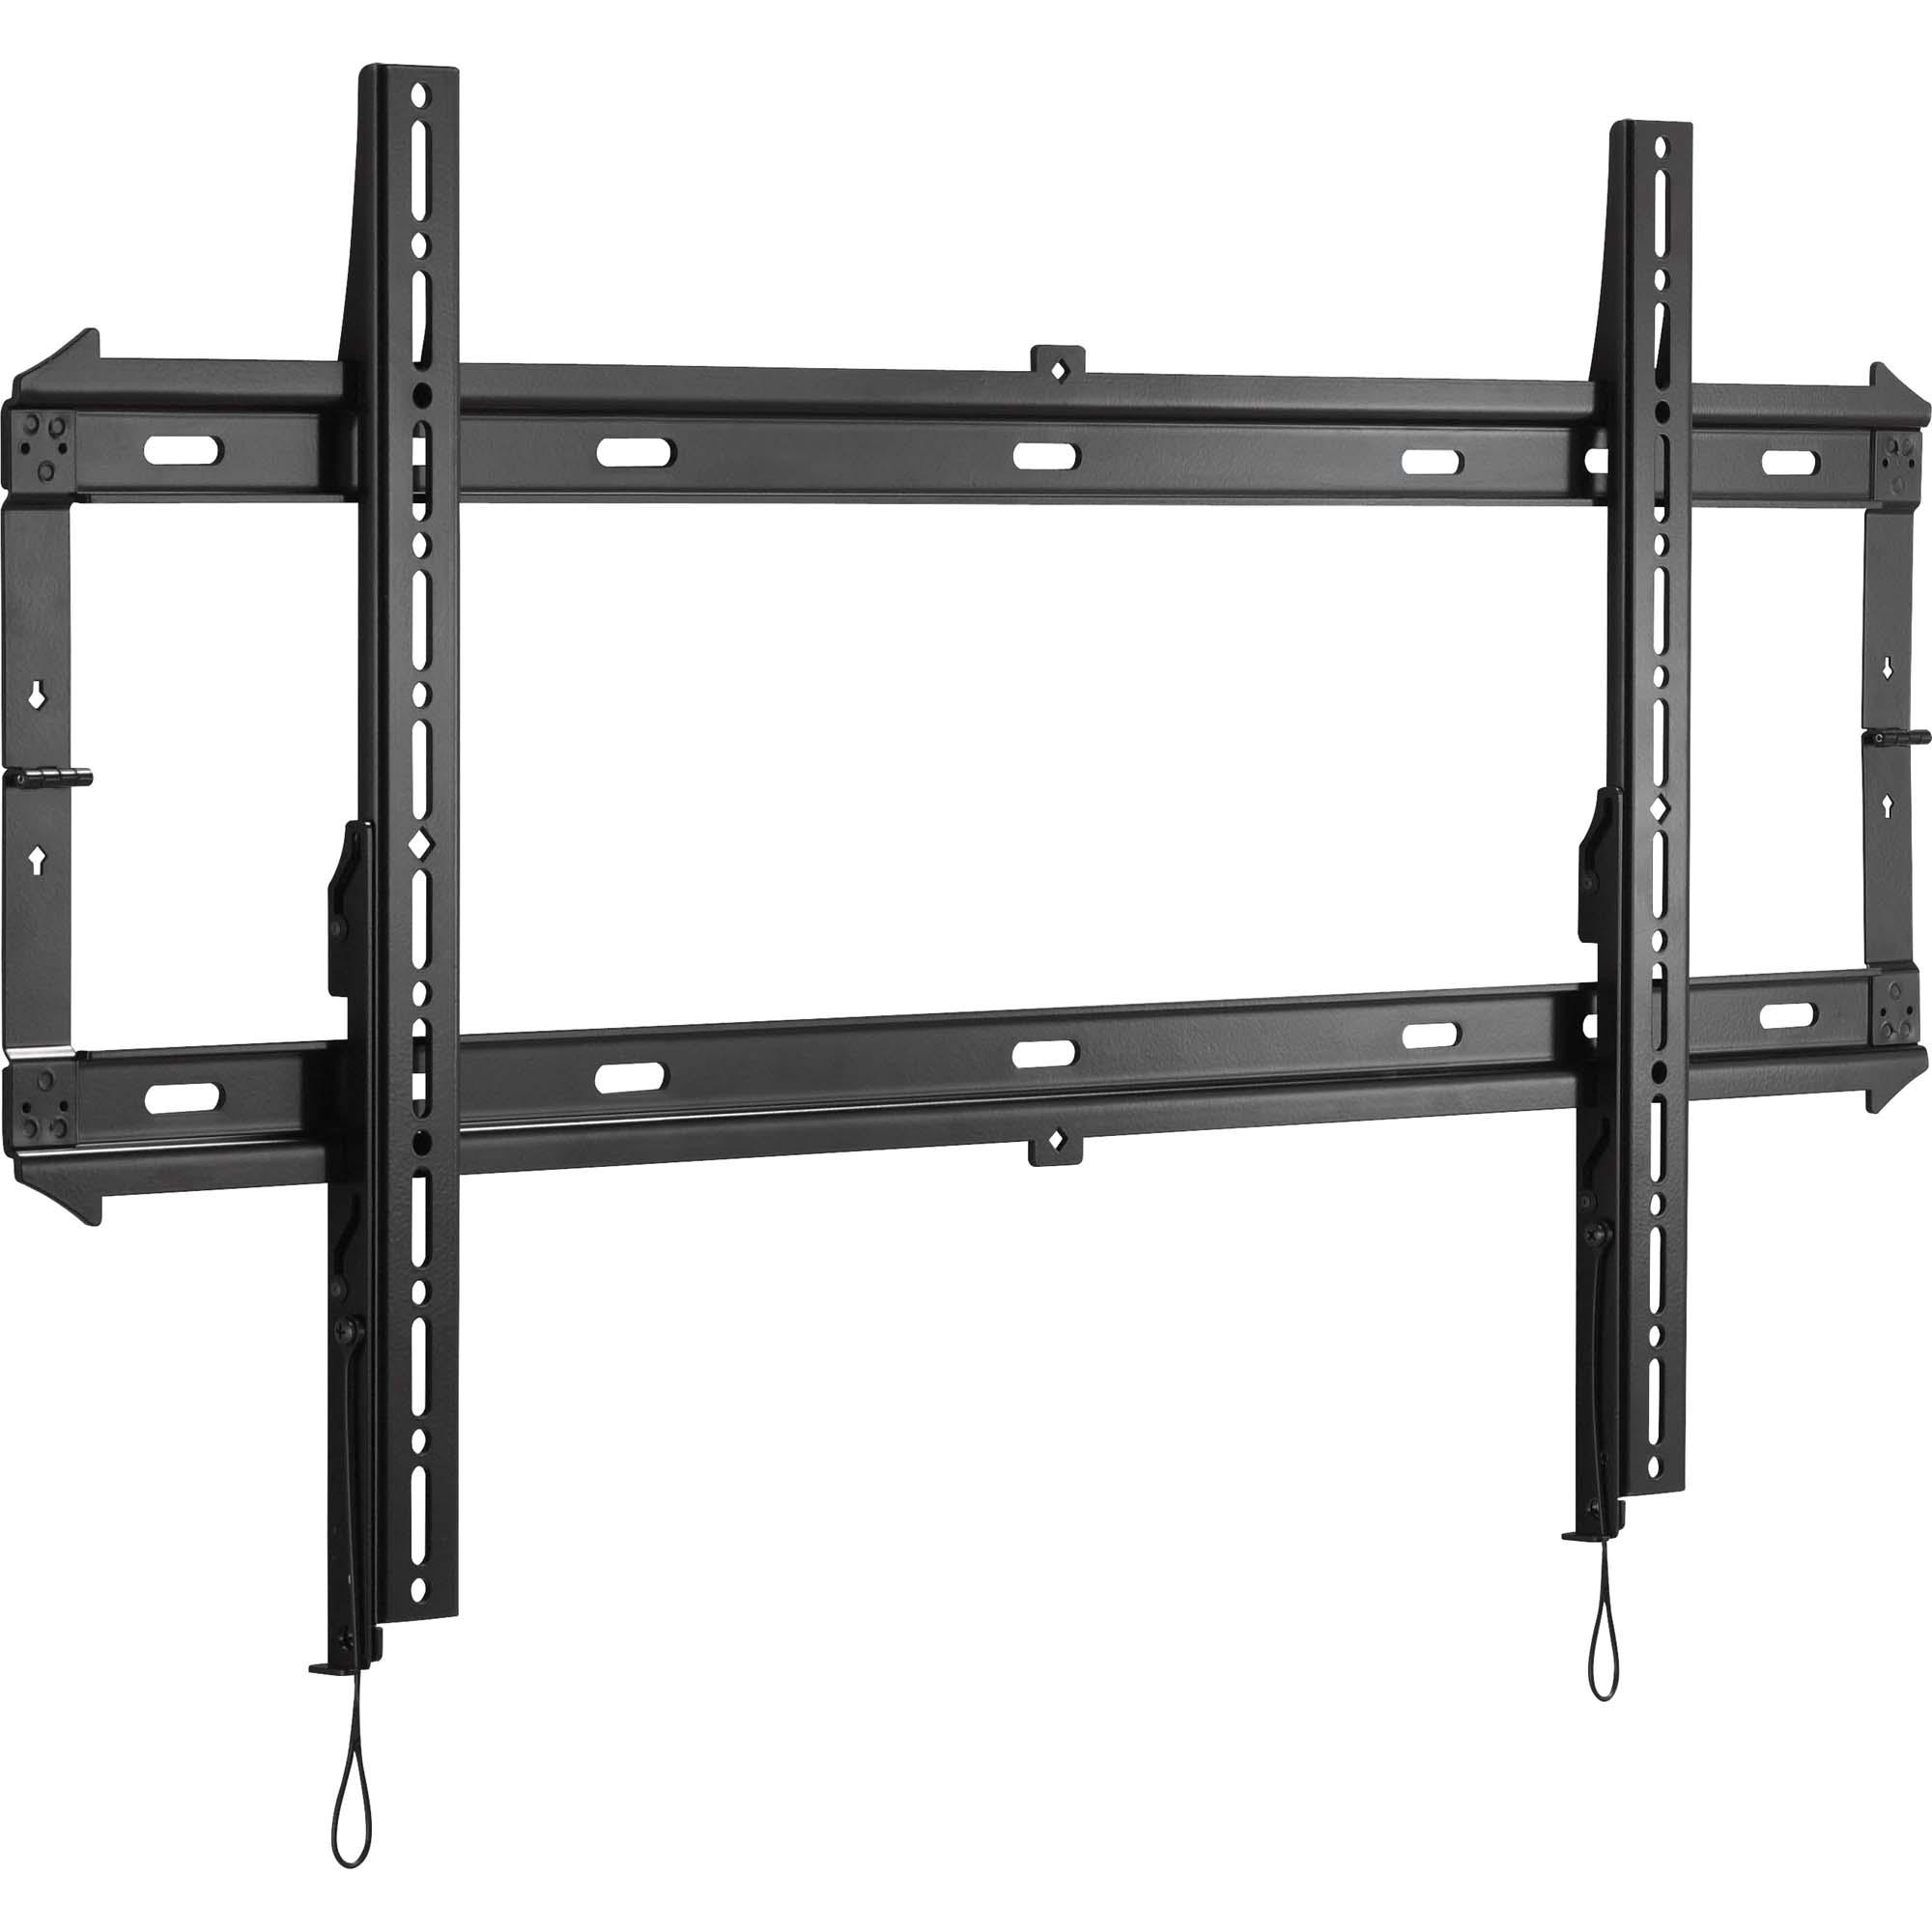 "Chief RXF2 Wall Mount for Flat Panel Display - 40"" to 63"" Screen (Refurbished)"